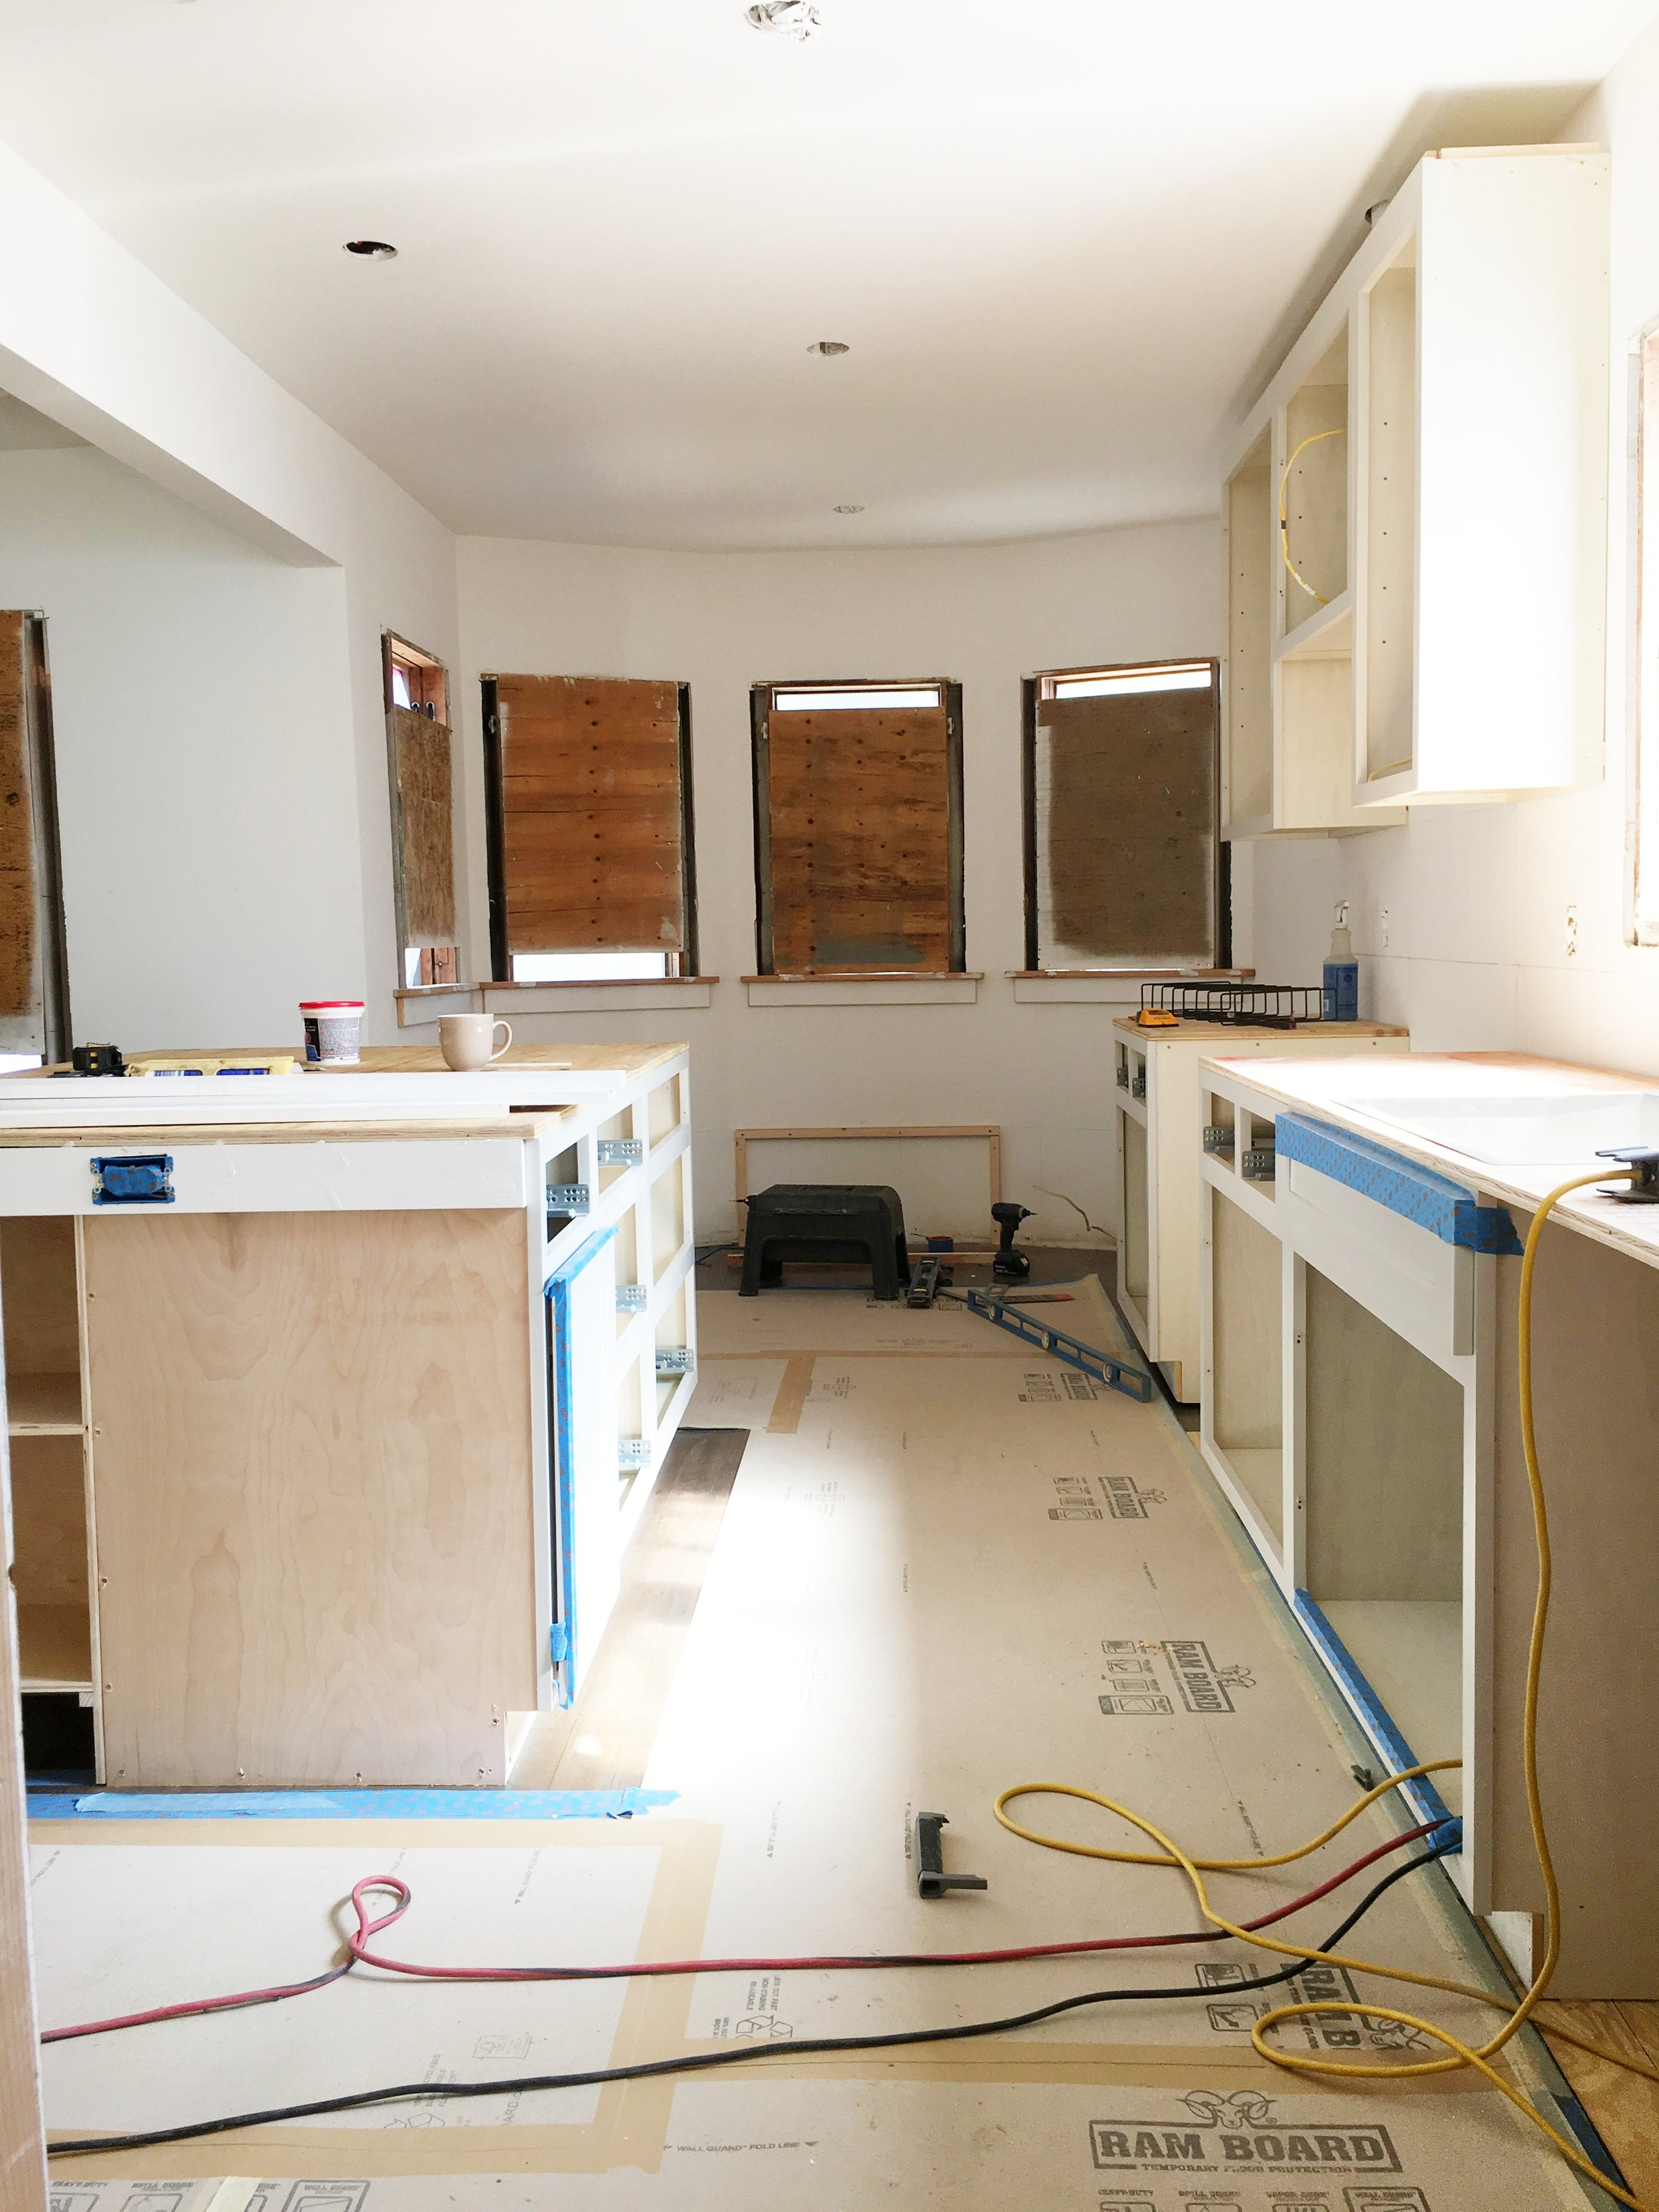 Hardwood floors have been covered to protect the new refinishing.Cabinets have been installed.